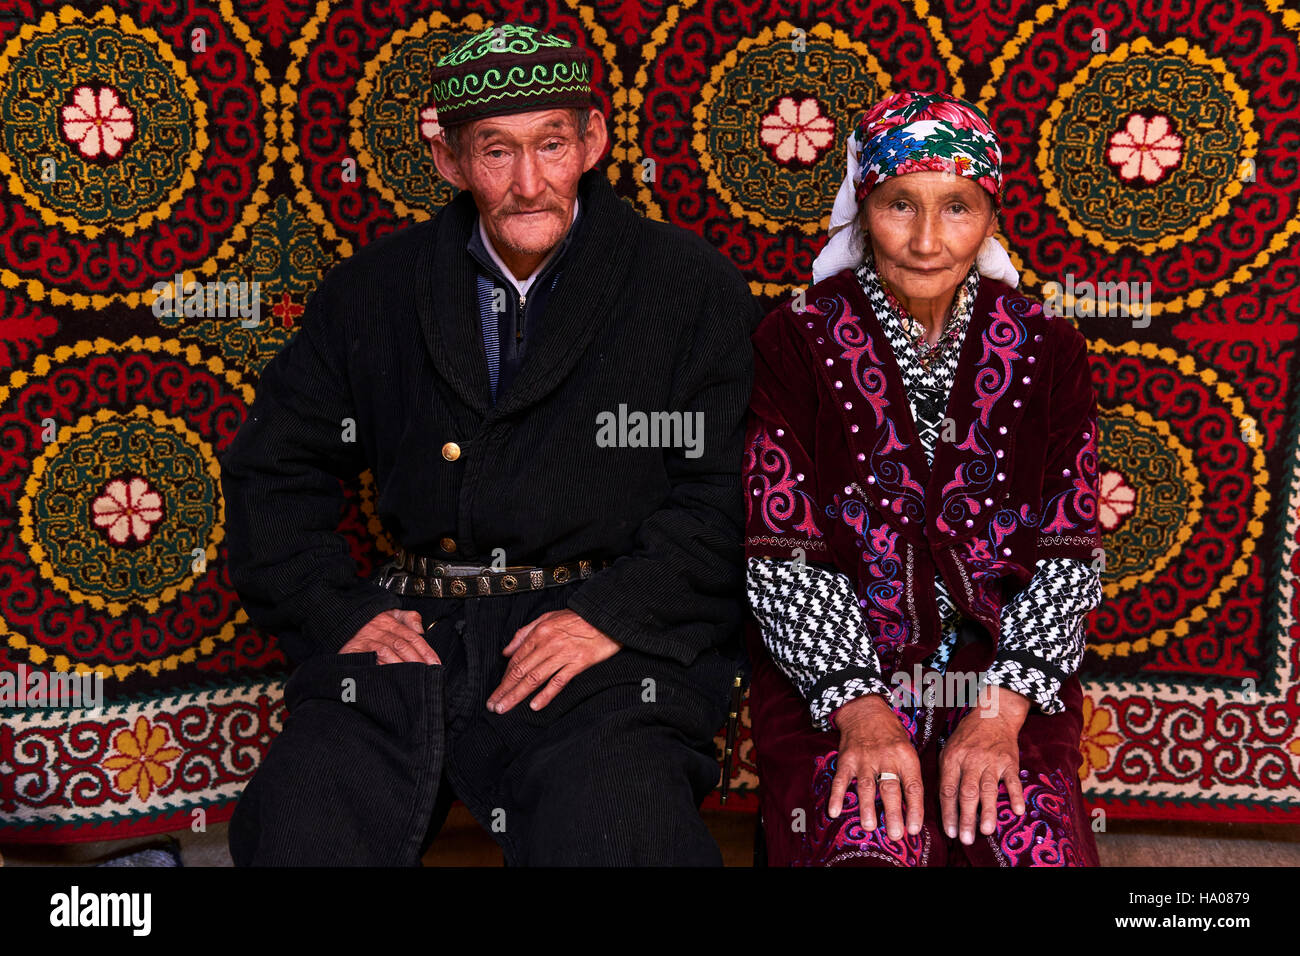 Mongolia, Bayan-Ulgii province, western Mongolia, nomad camp of Kazakh people in the steppe, Kazakh couple inside - Stock Image